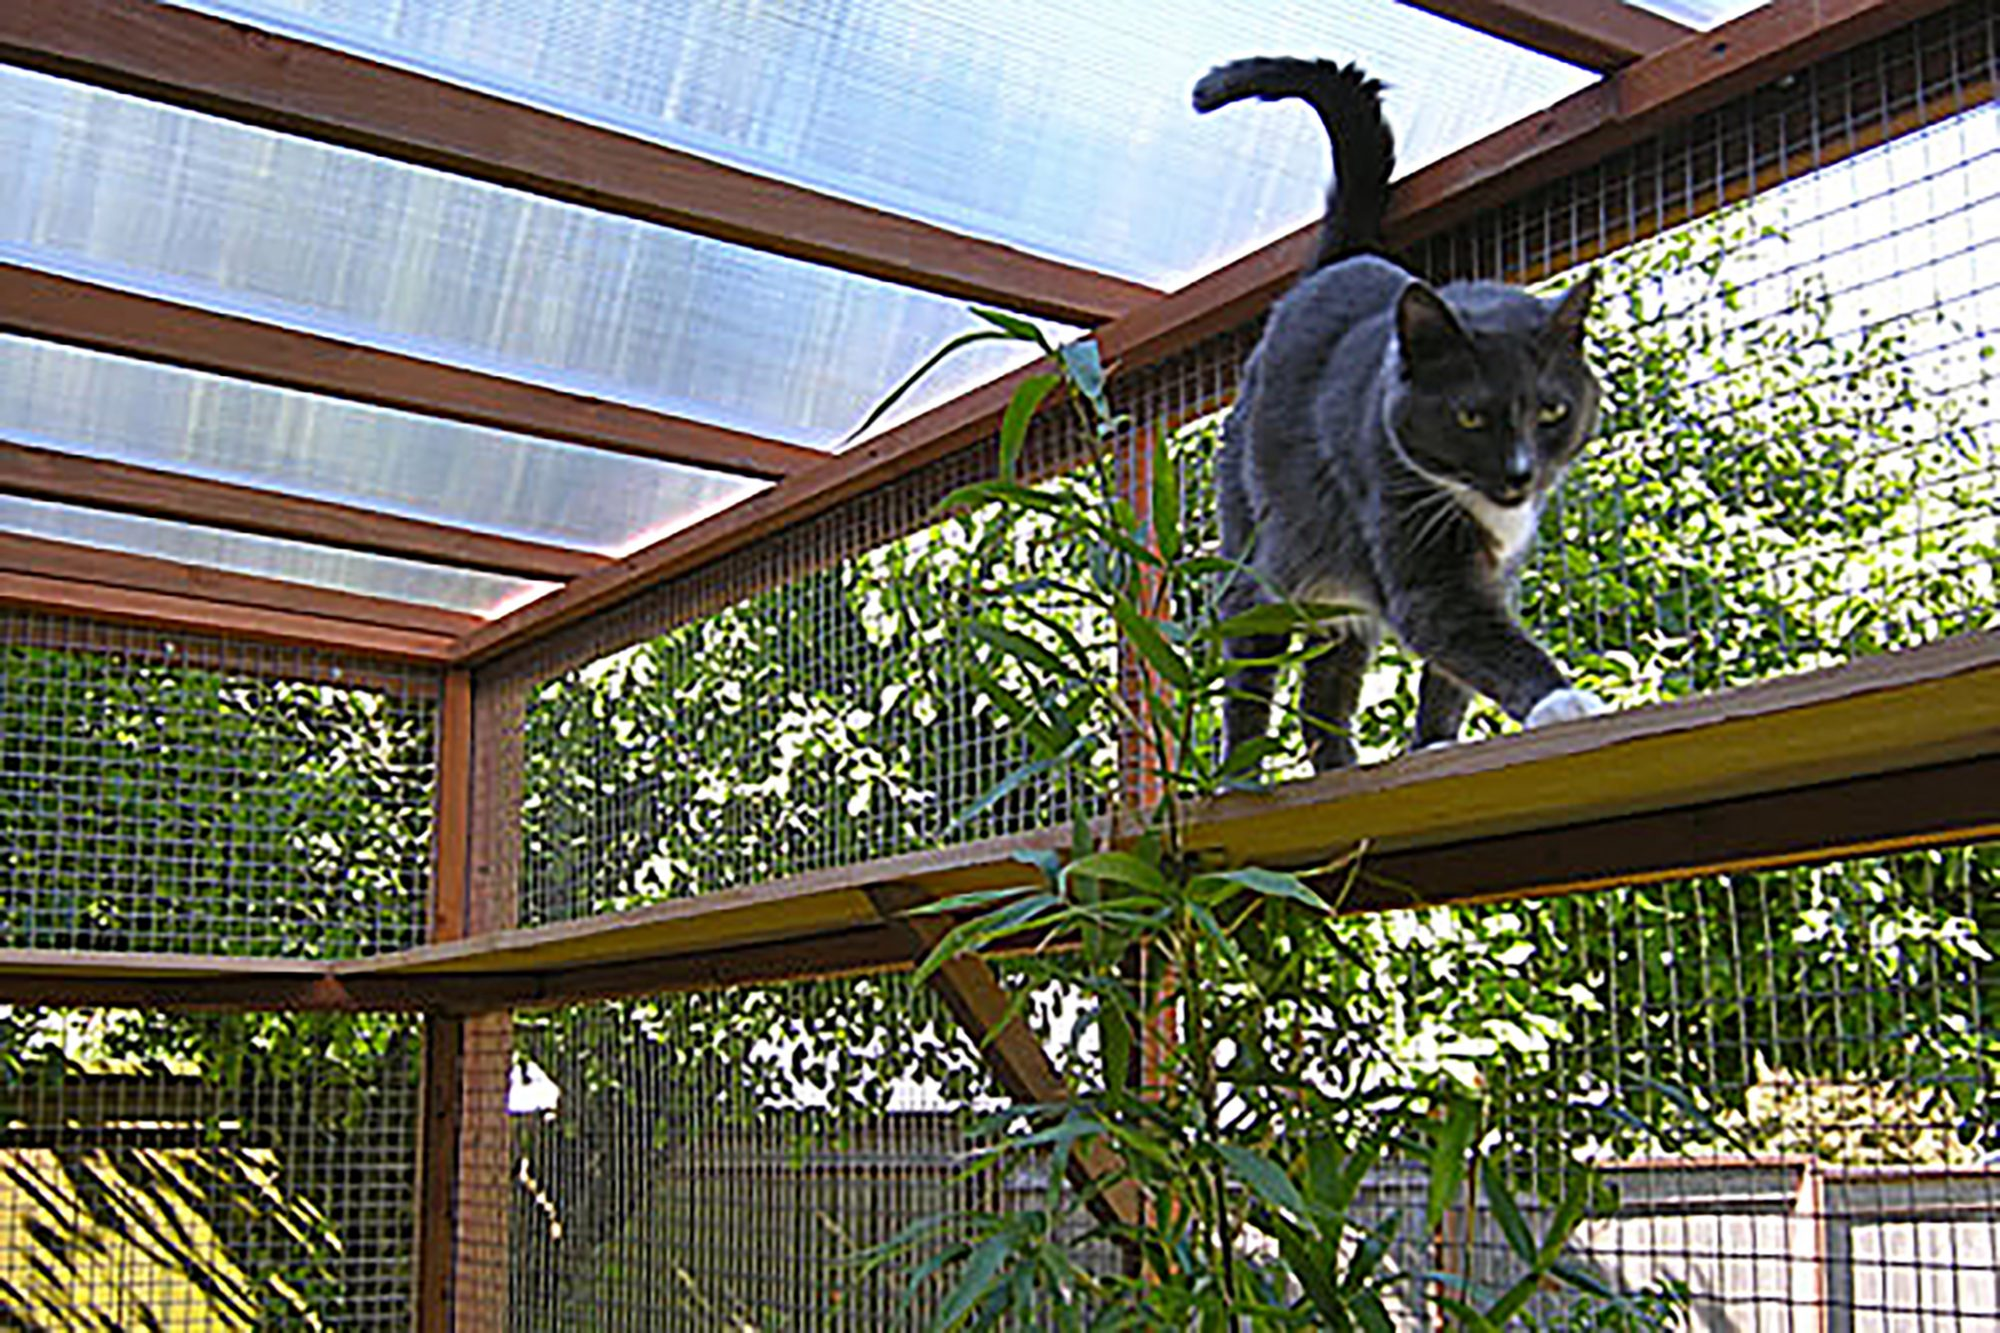 catio interior with cat walking on ledge